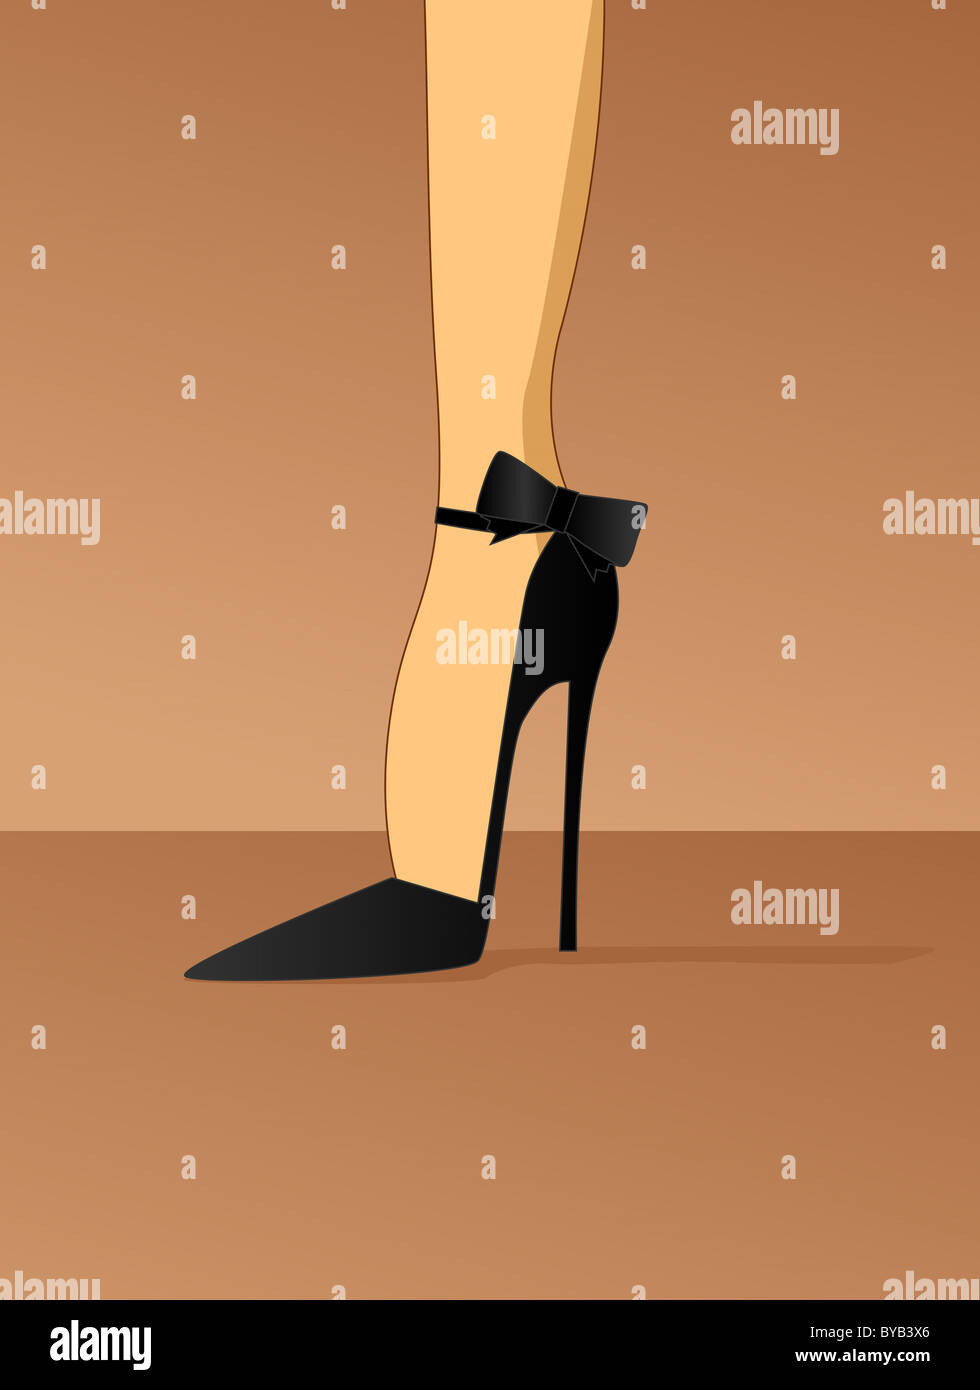 Illustration of a woman wearing a black stiletto high heel shoe - Stock Image